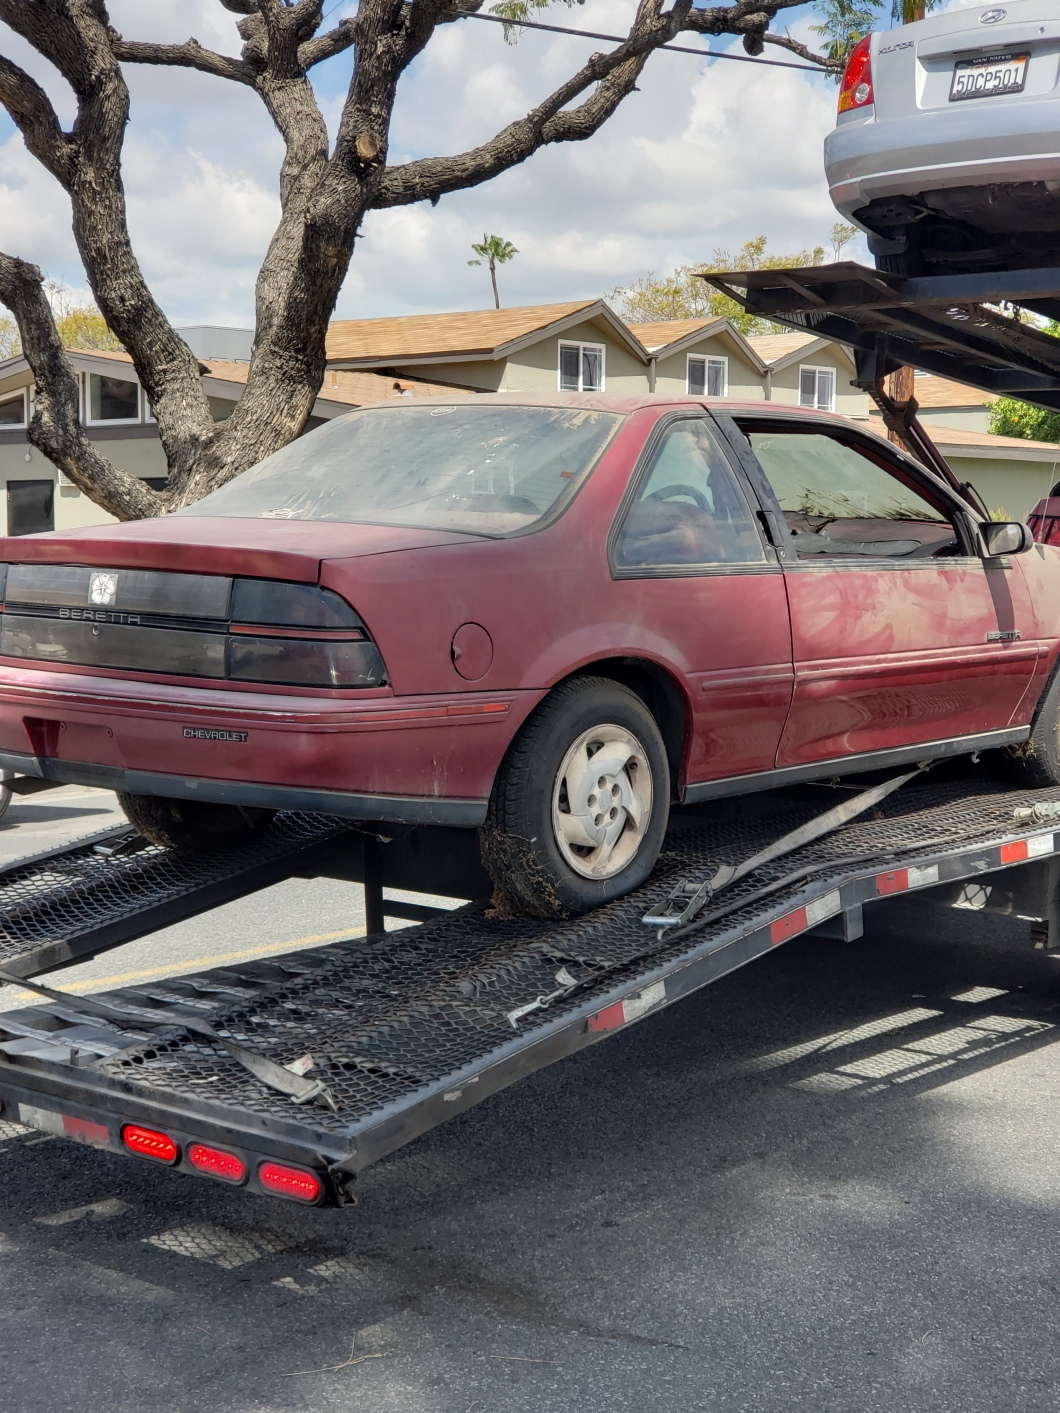 Grace, a 1992 Beretta, readied for towing by Kars4Kids, 2019